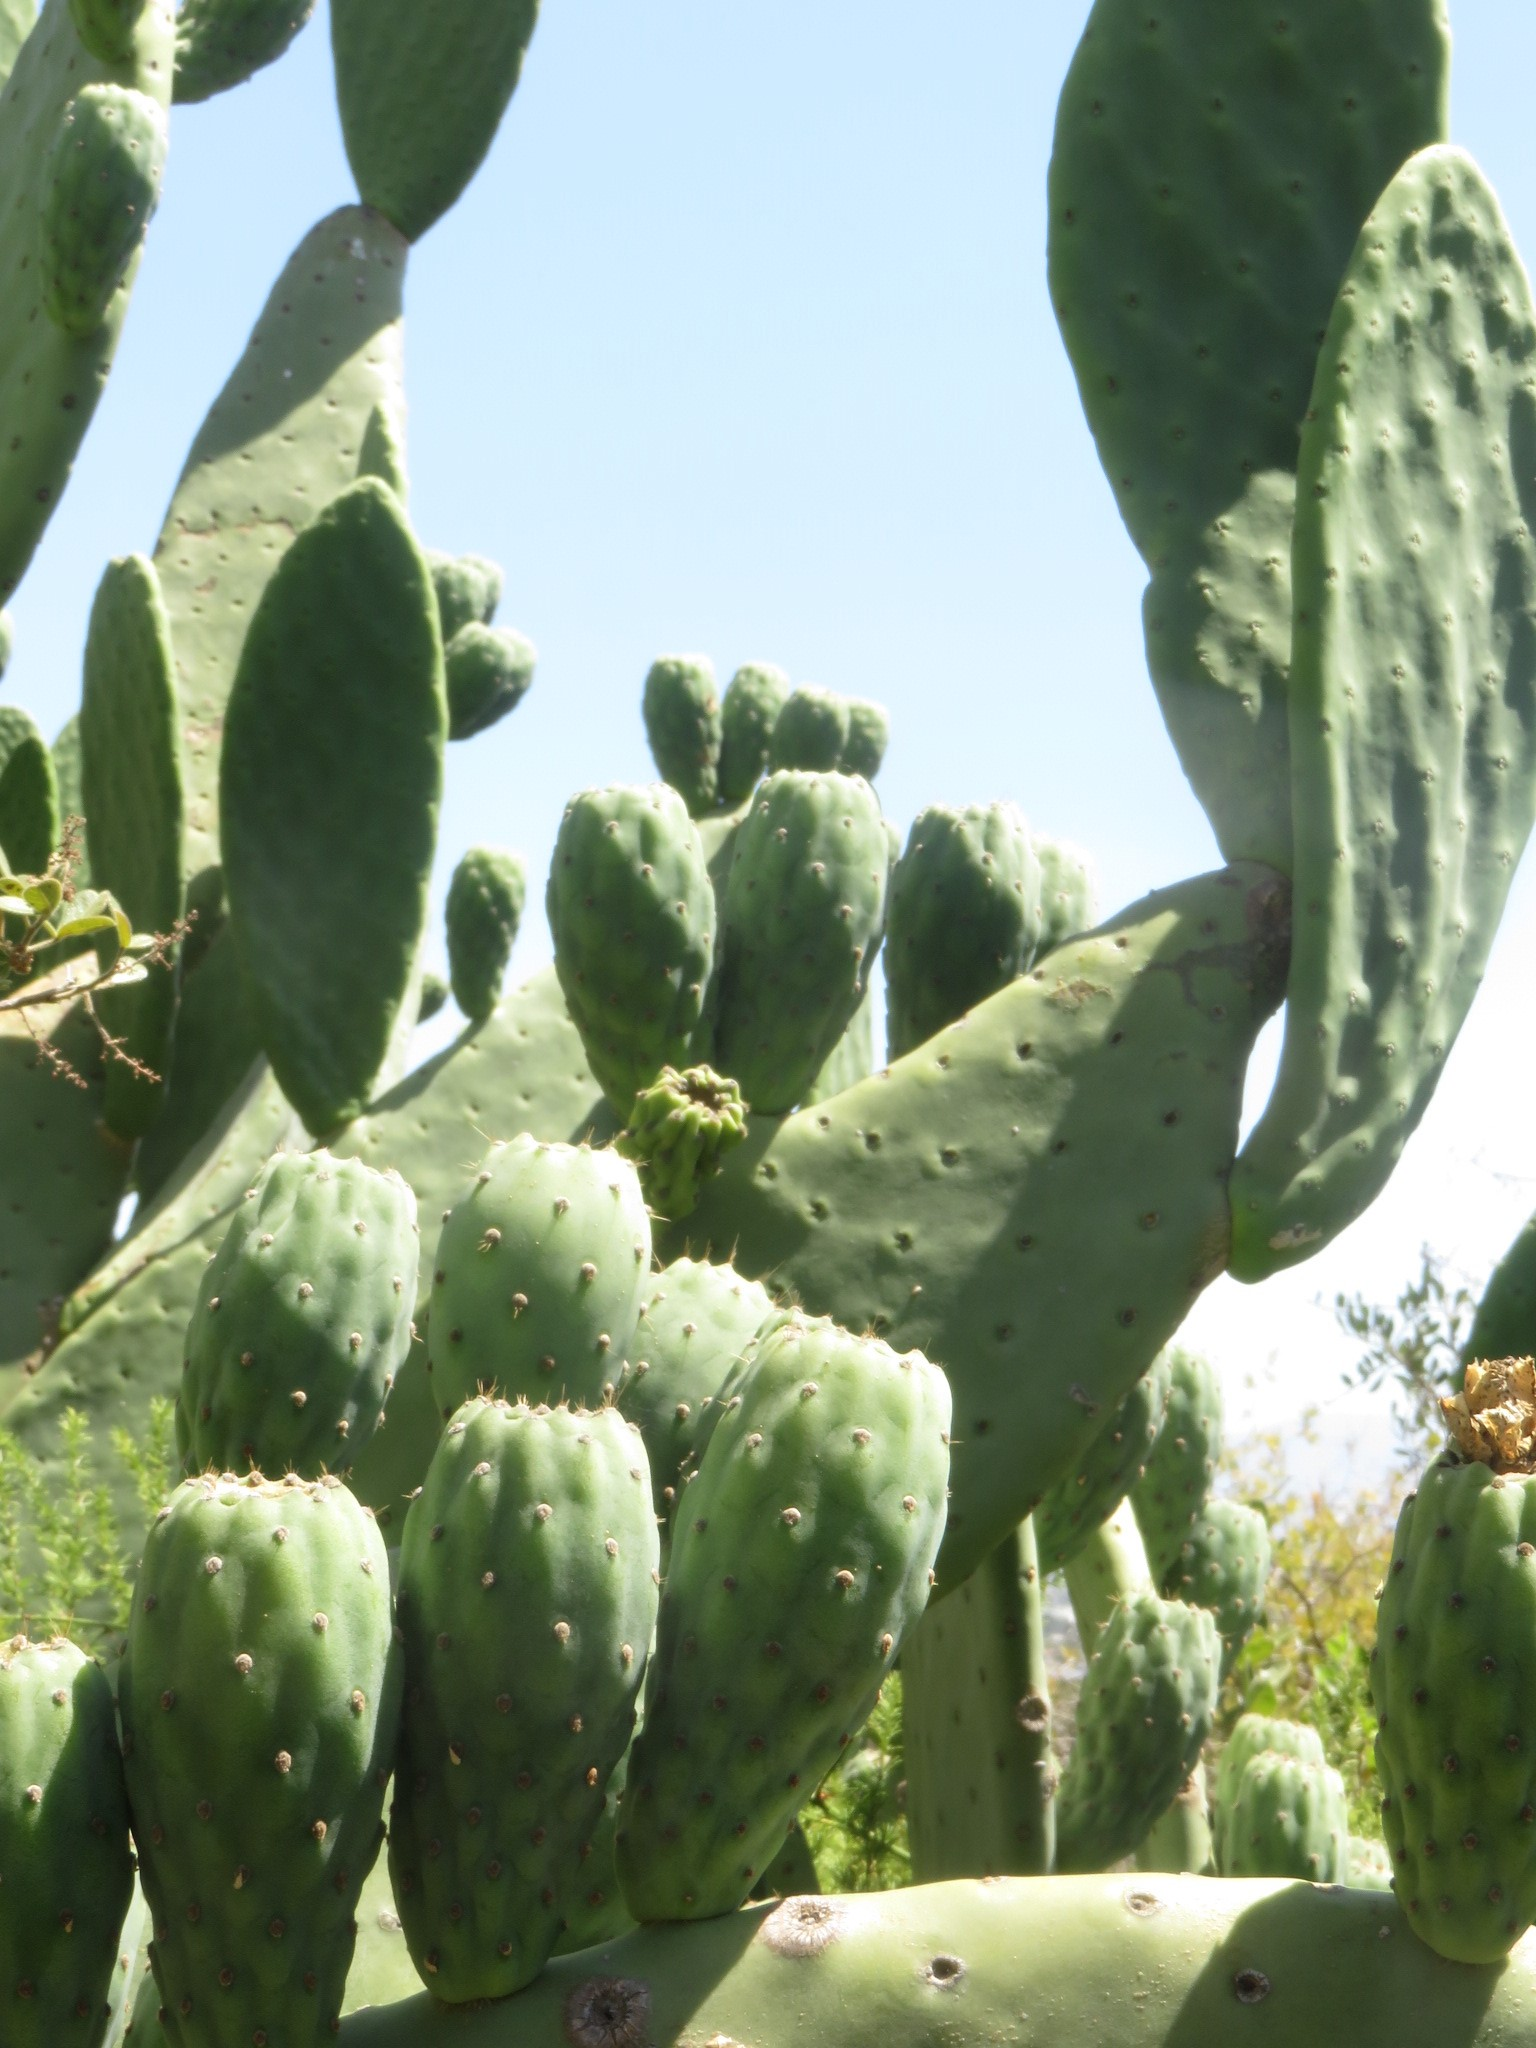 A feral nopal cactus growing in the arboretum at Plattekloof